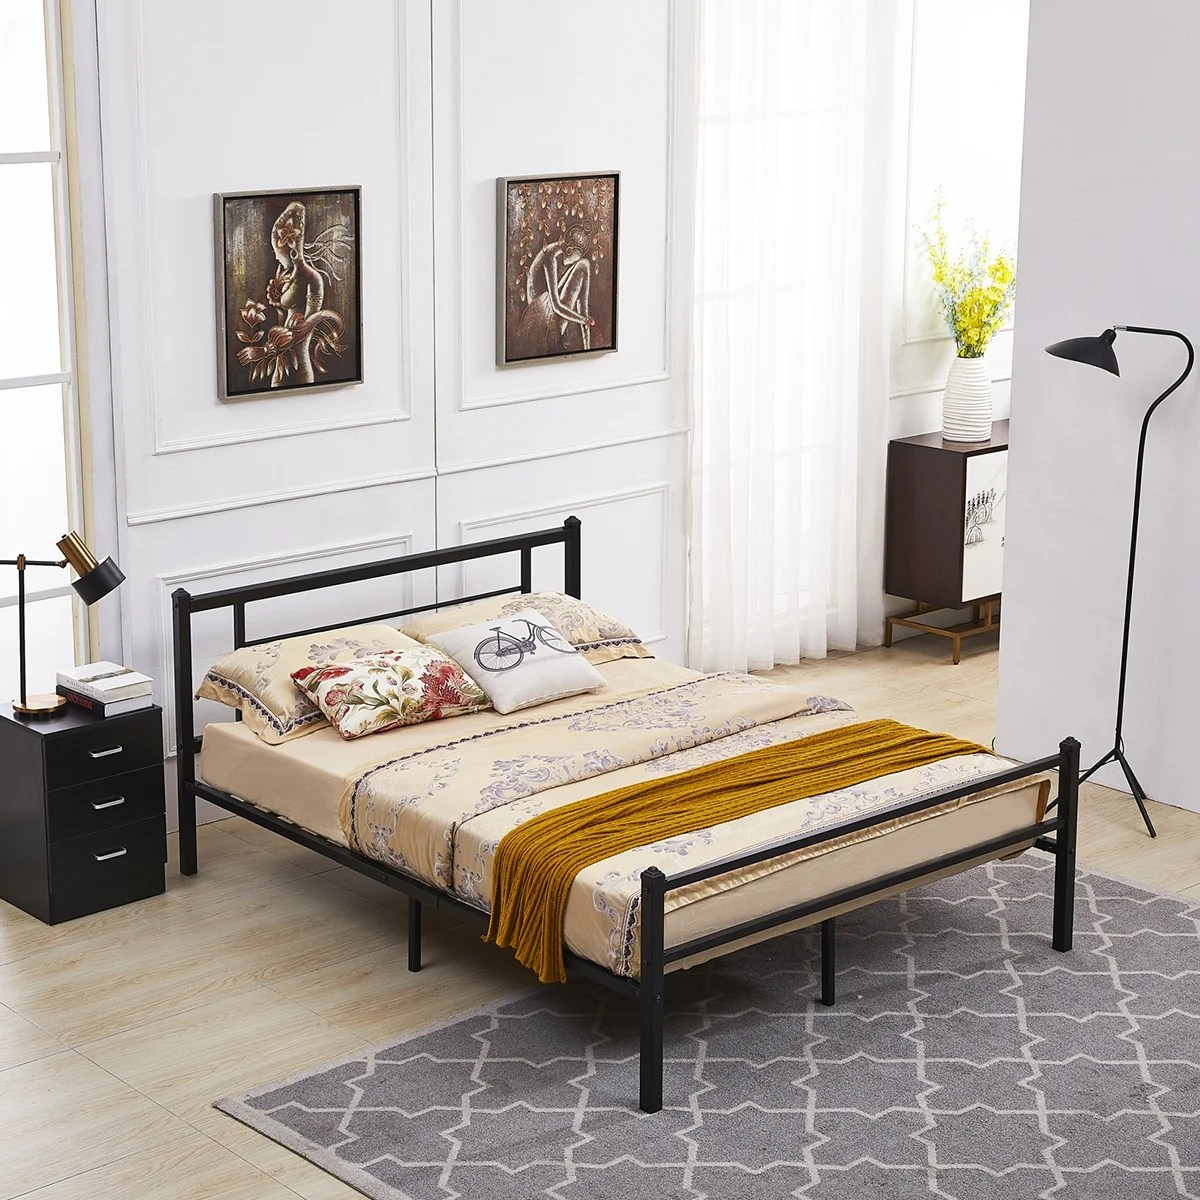 Metal Bed Headboards Metal Bed Frame With Headboard And Footboard Twin Full Queen Black